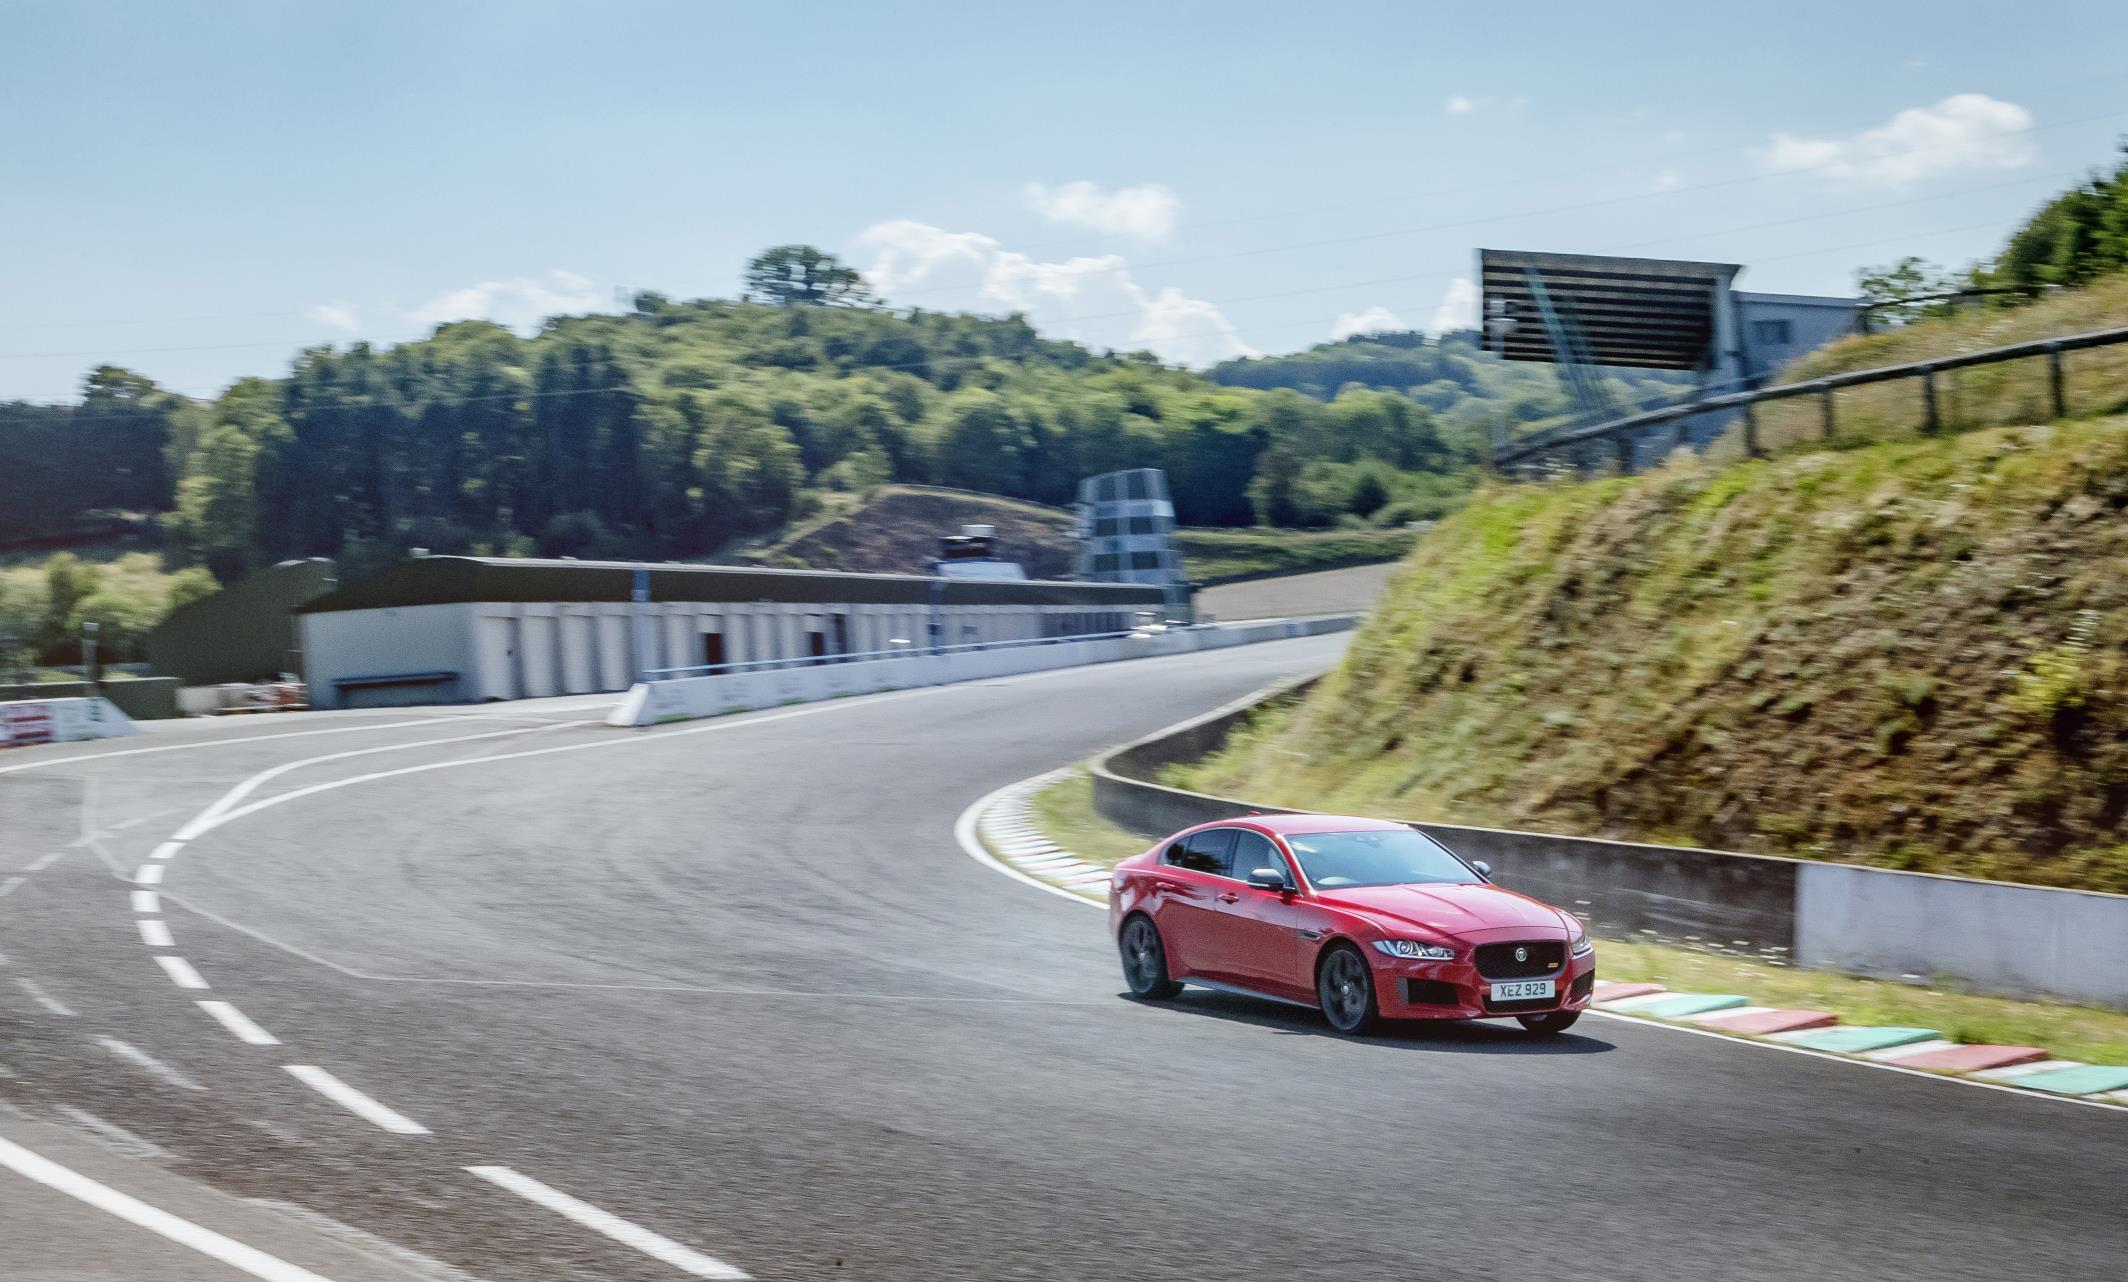 Jaguar Bolsters Performance Stance With New Lap Record Forces Complete The Circuit After Completing Fastest Ever Of Nrburgring Nordschleife In A Production Saloon Behind Wheel Xes Track Ready Stablemate